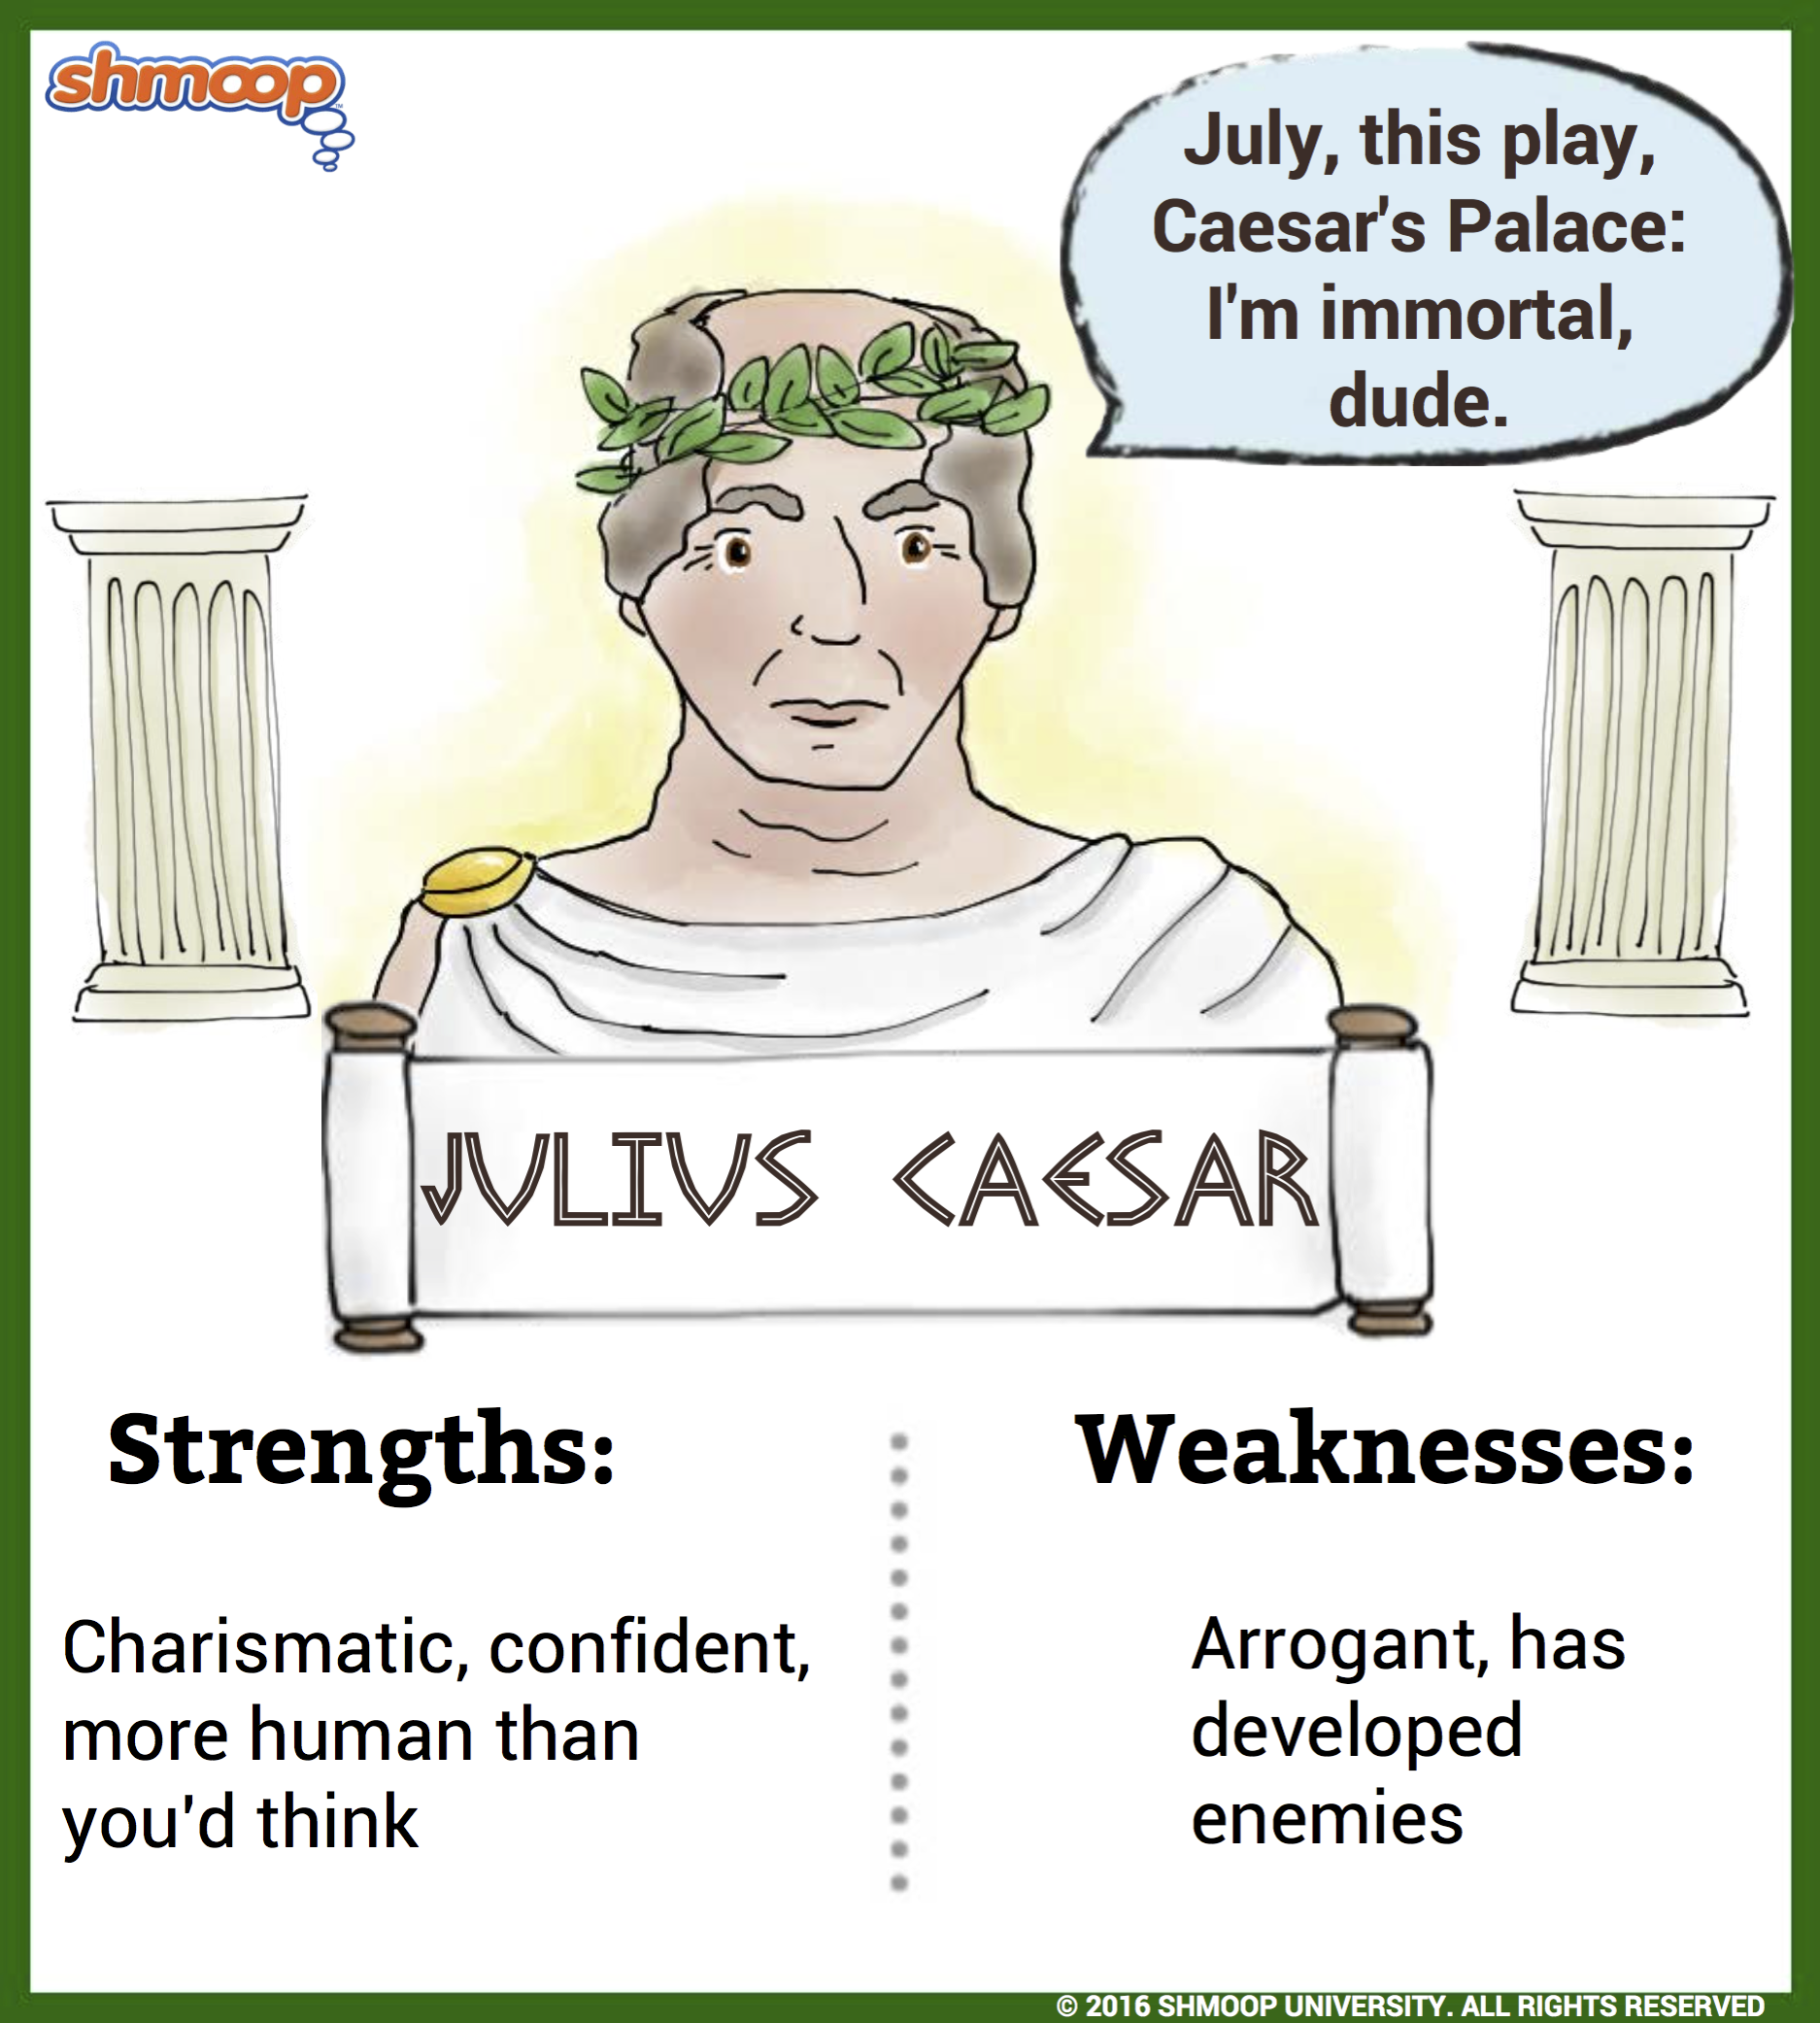 julius caesar, power essay Julius caesar by william shakespeare  essays on shakespeare's julius caesar: the play julius caesar and its relevance to recent events julius caesar is a play written by william shakespeare in 1599 before his other great tragedies however, it became famous for its outstanding language and structure, making it easy to act it out in the.